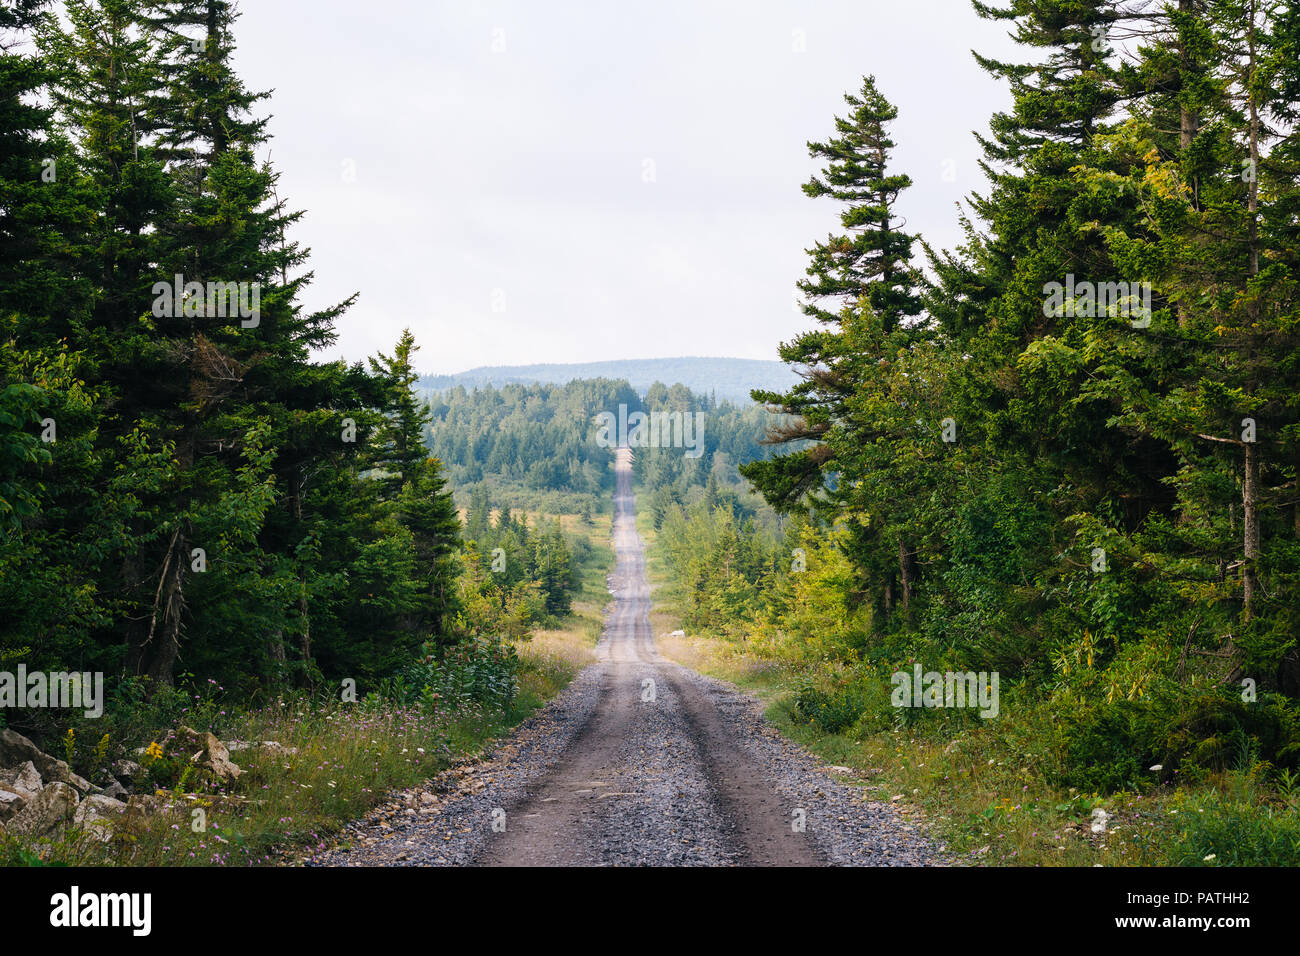 A dirt road and pine trees in Dolly Sods Wilderness, Monongahela National Forest, West Virginia. - Stock Image